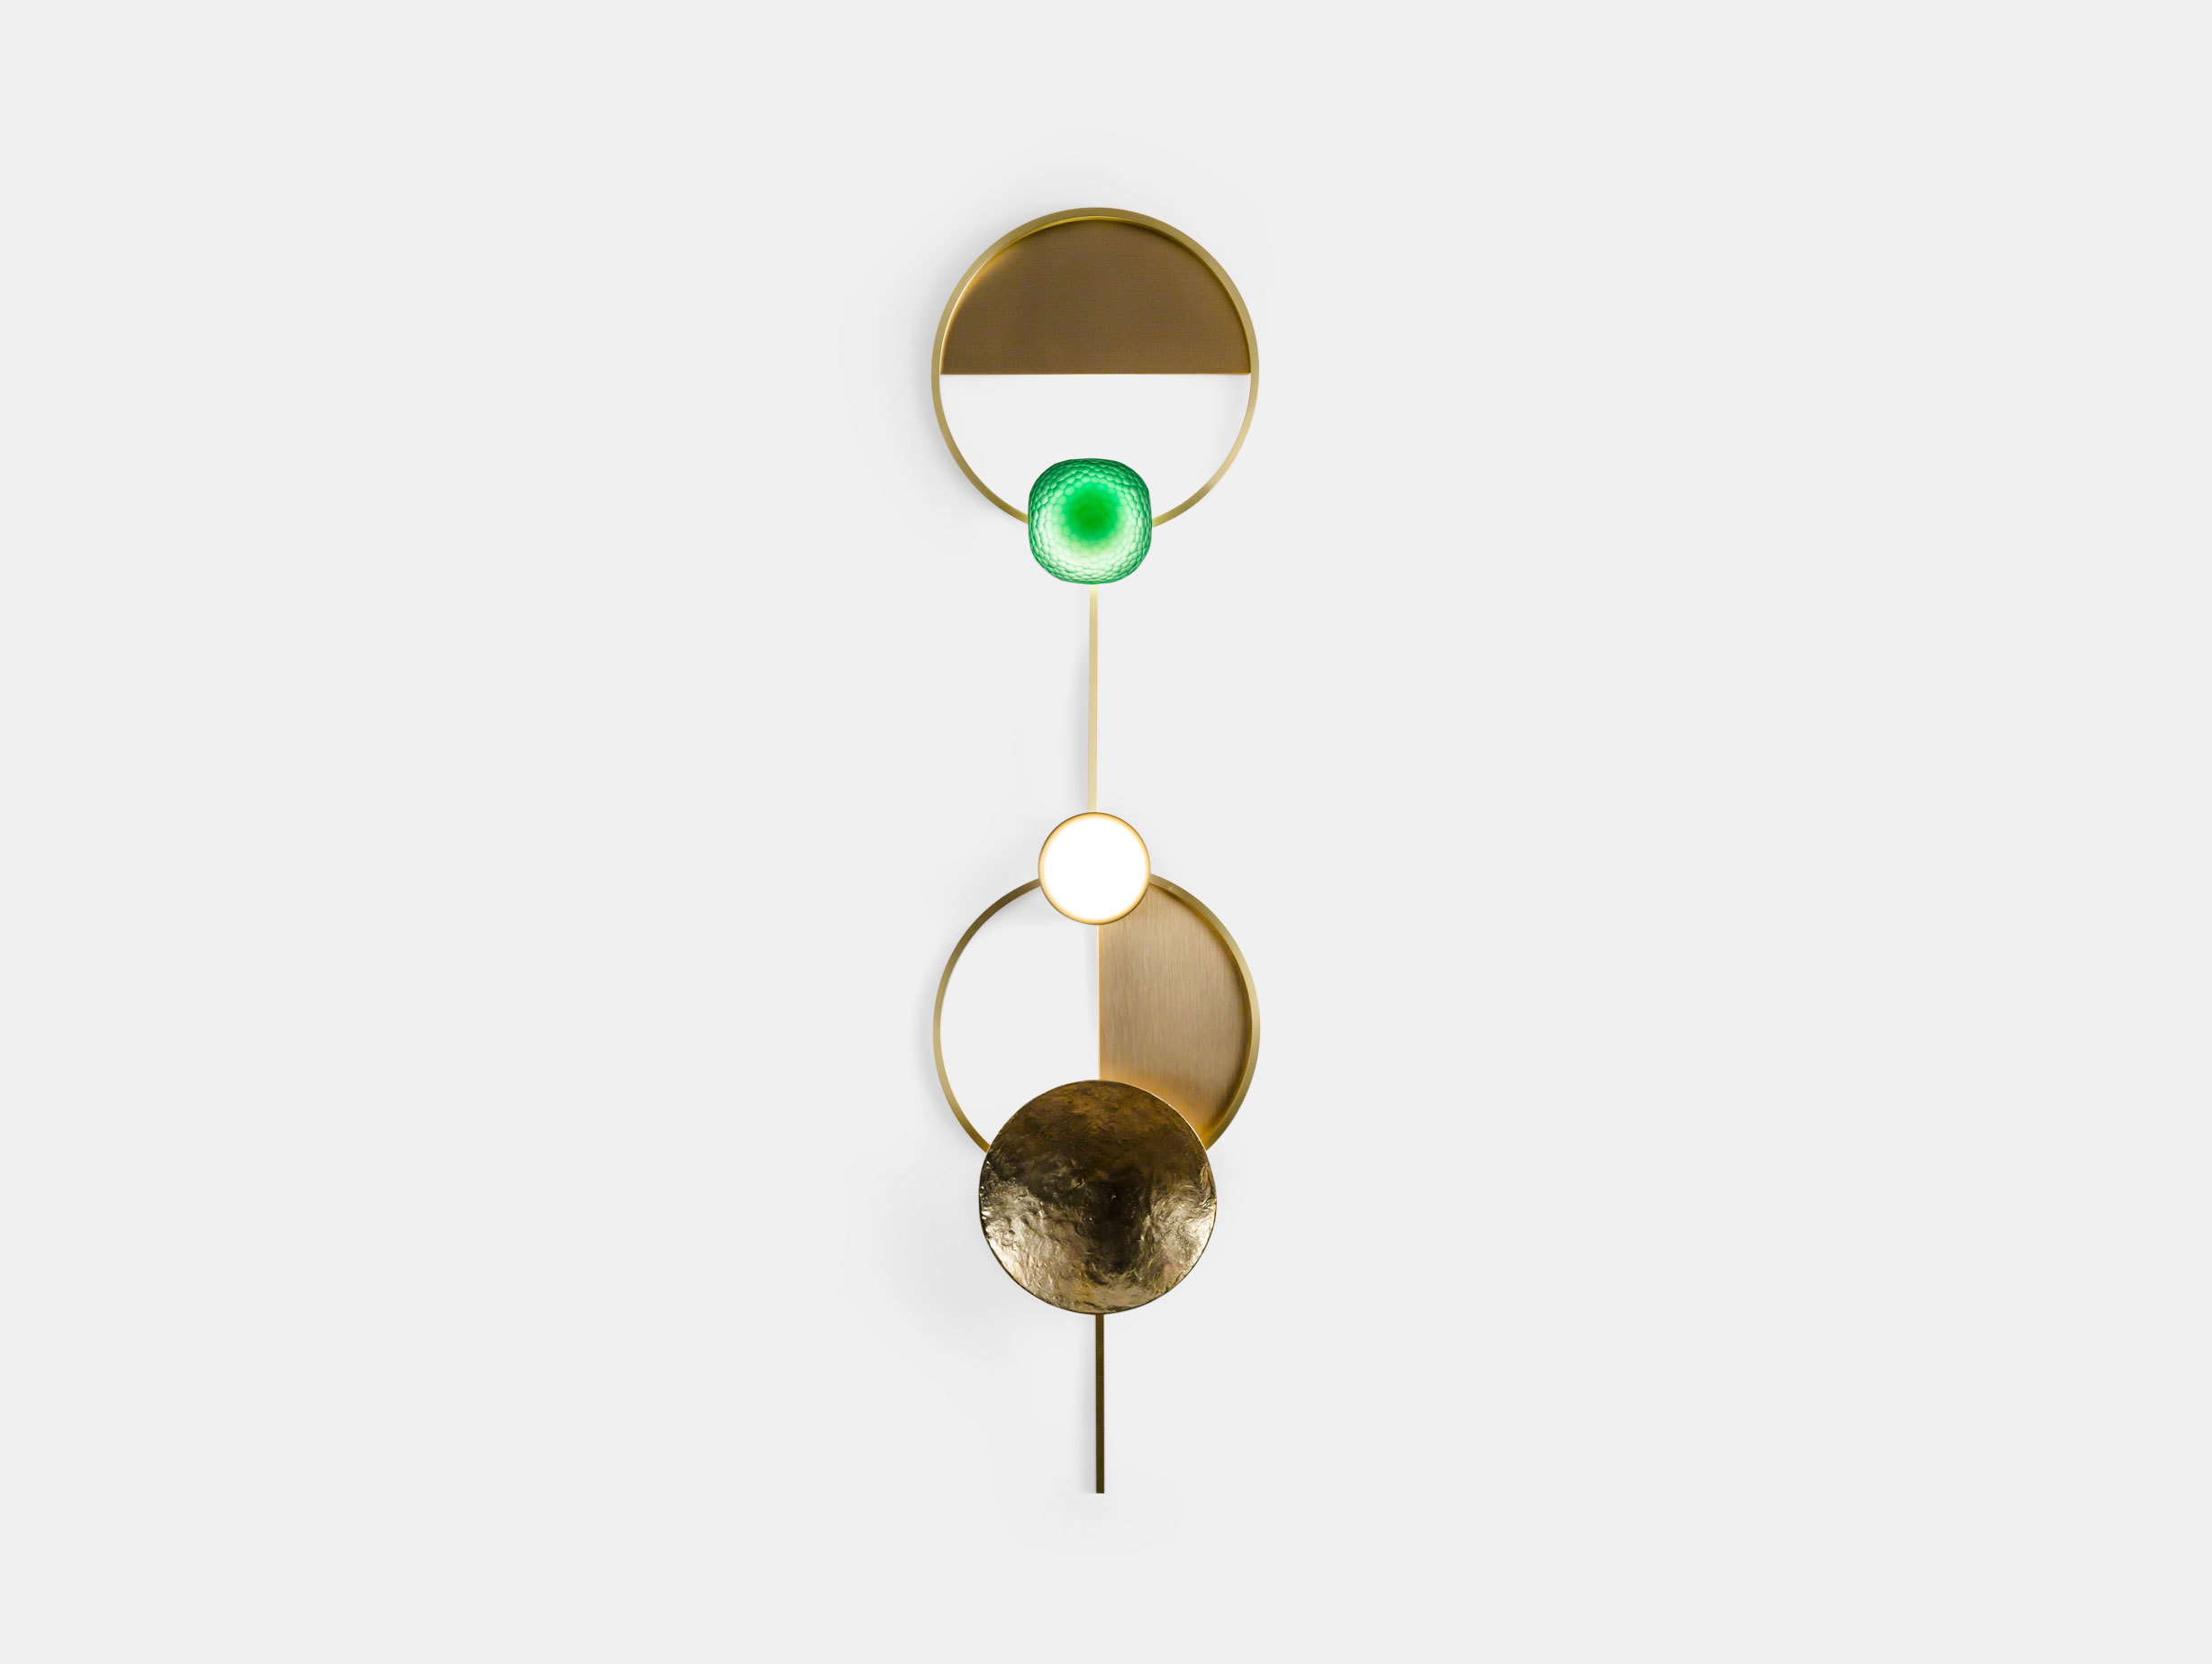 Giopato And Coombes Gioielli 04 Wall Light